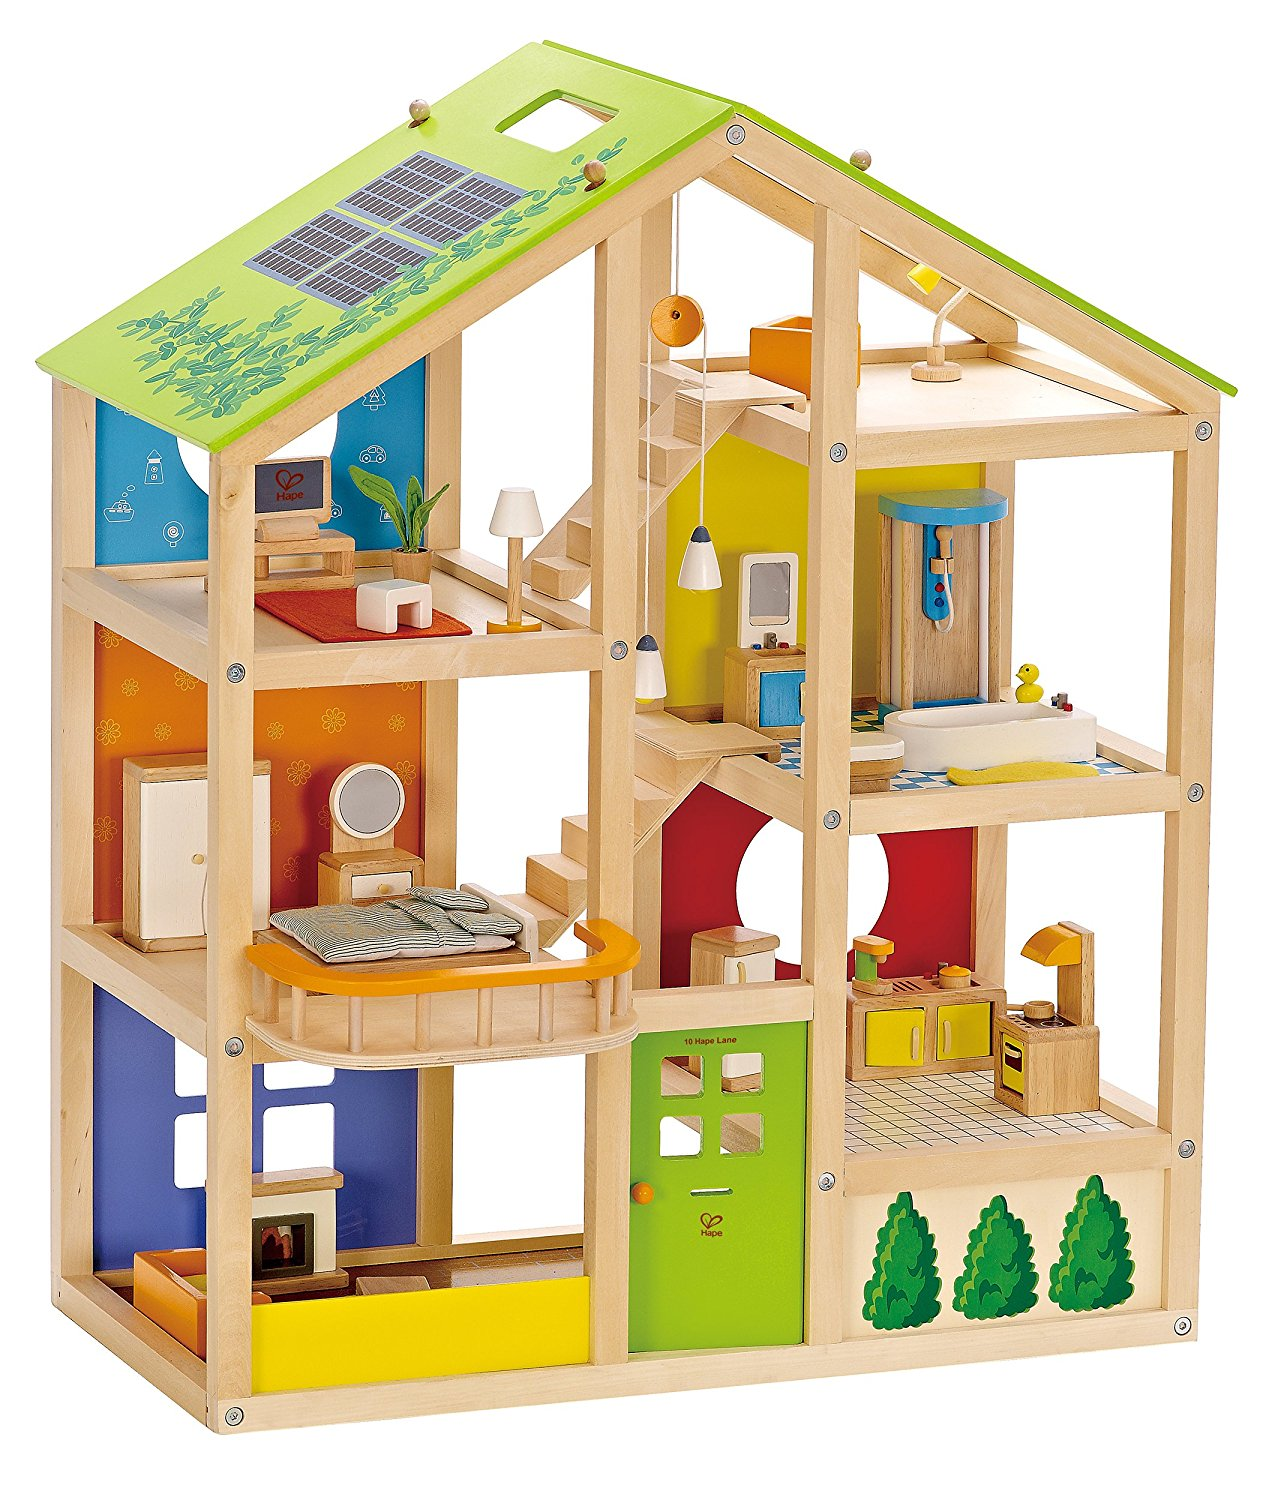 Images of doll houses - Hape All Seasons Kid S Wooden Doll House 140 64